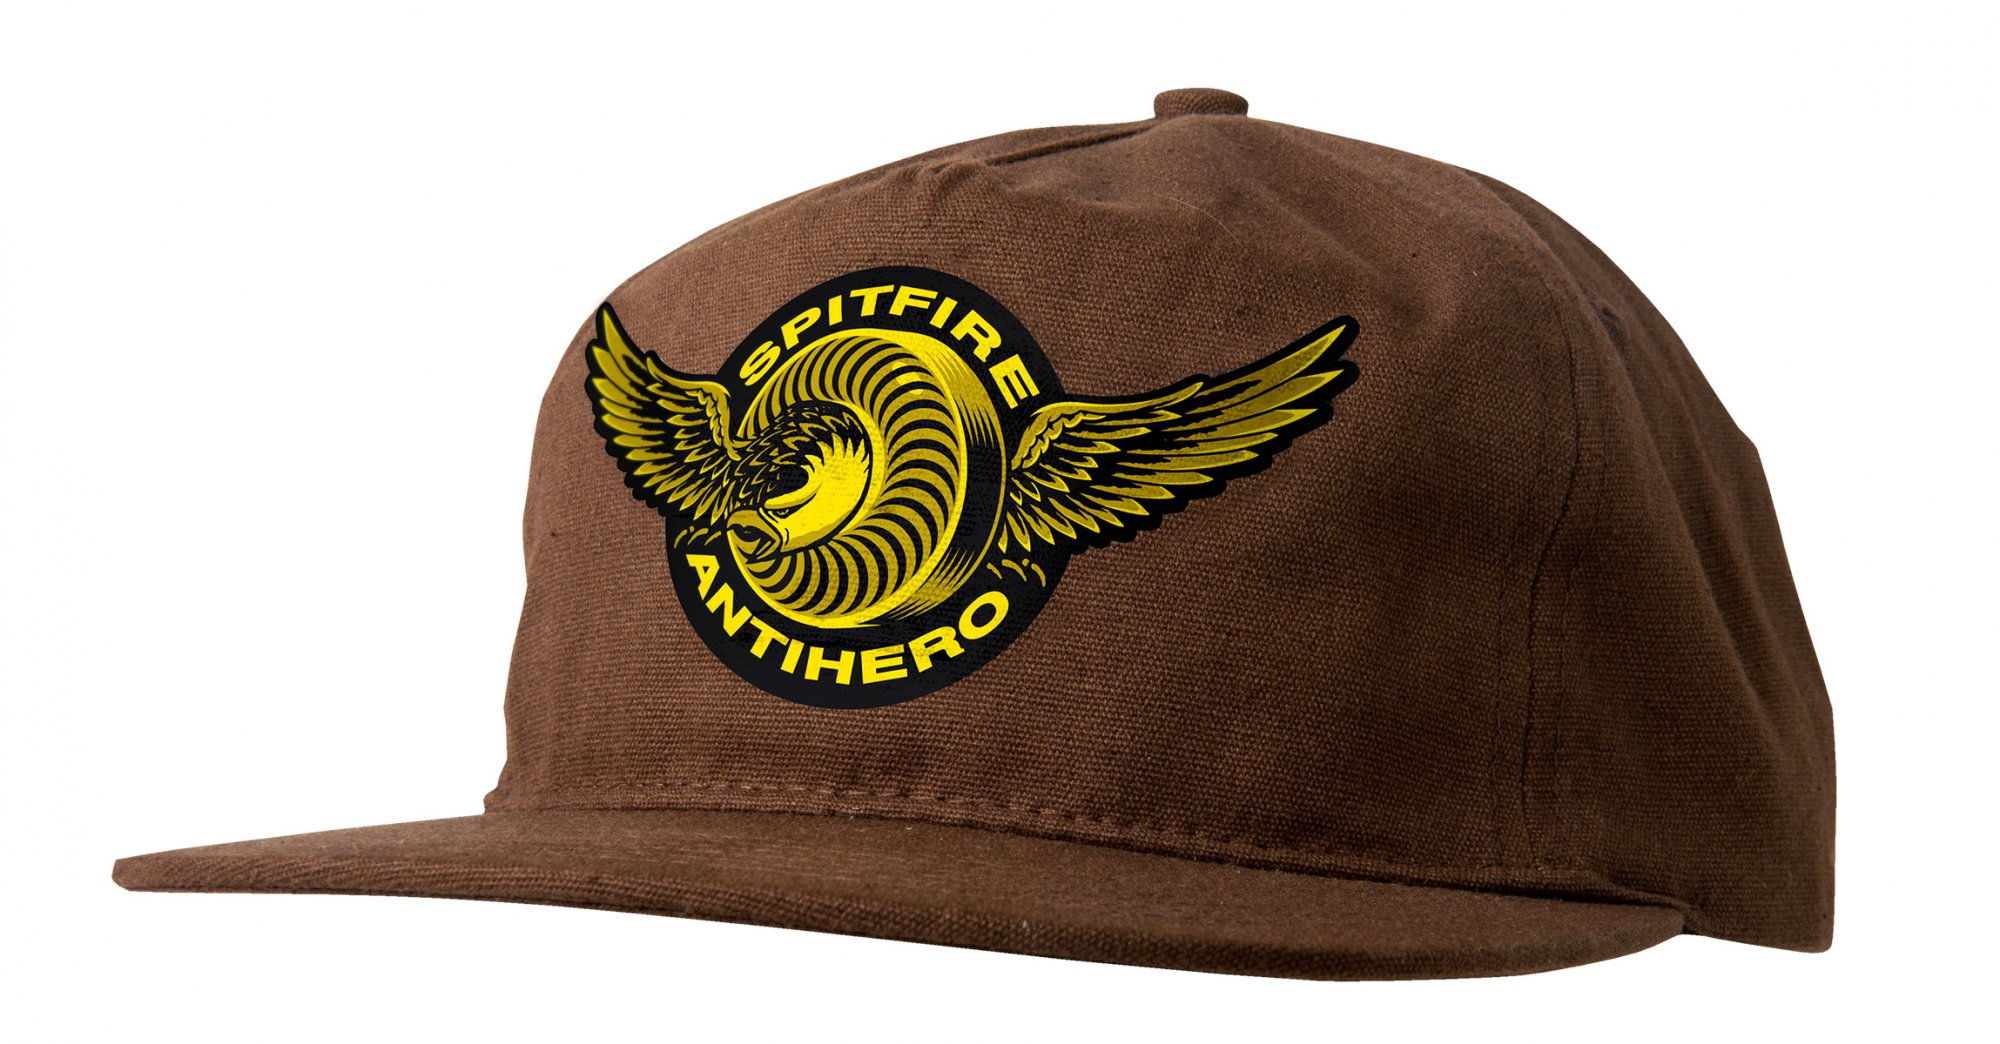 Spitfire X Antihero Classic Eagle snapback brown